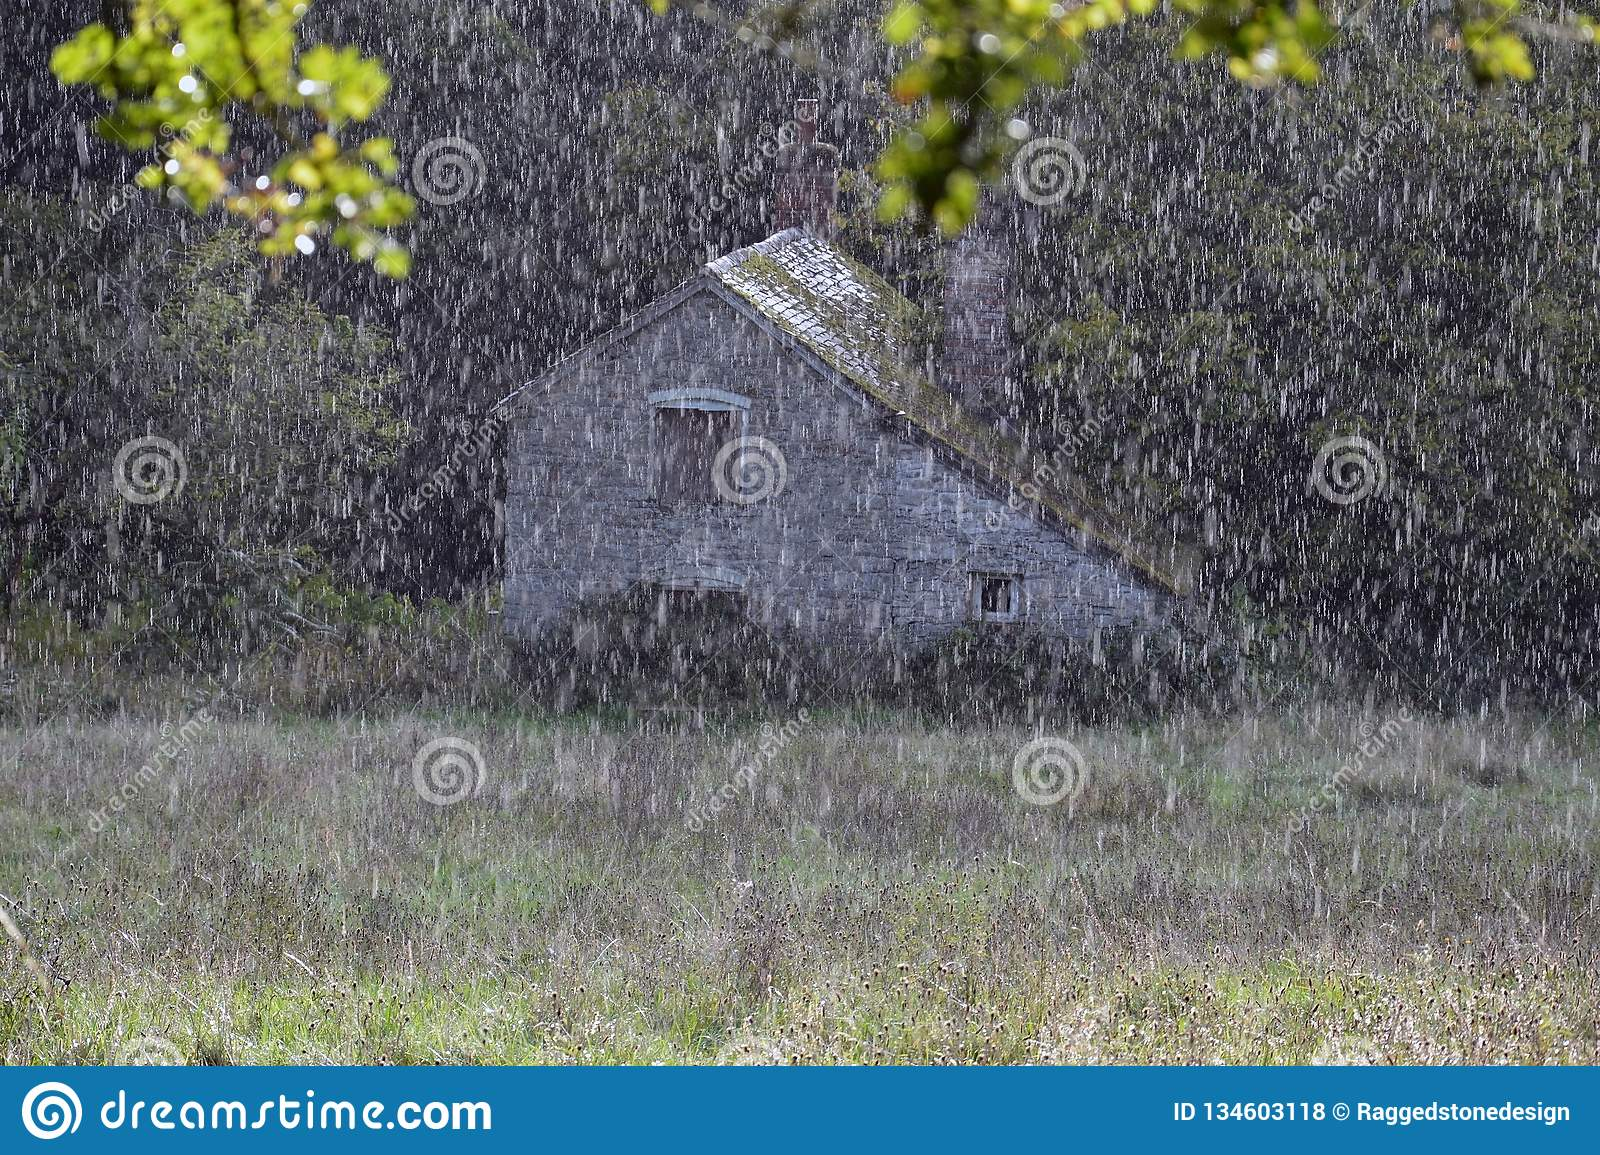 A close up of rain falling on a meadow with a beautiful abandoned mill. Knapp and Papermill, Worcestershire, UK